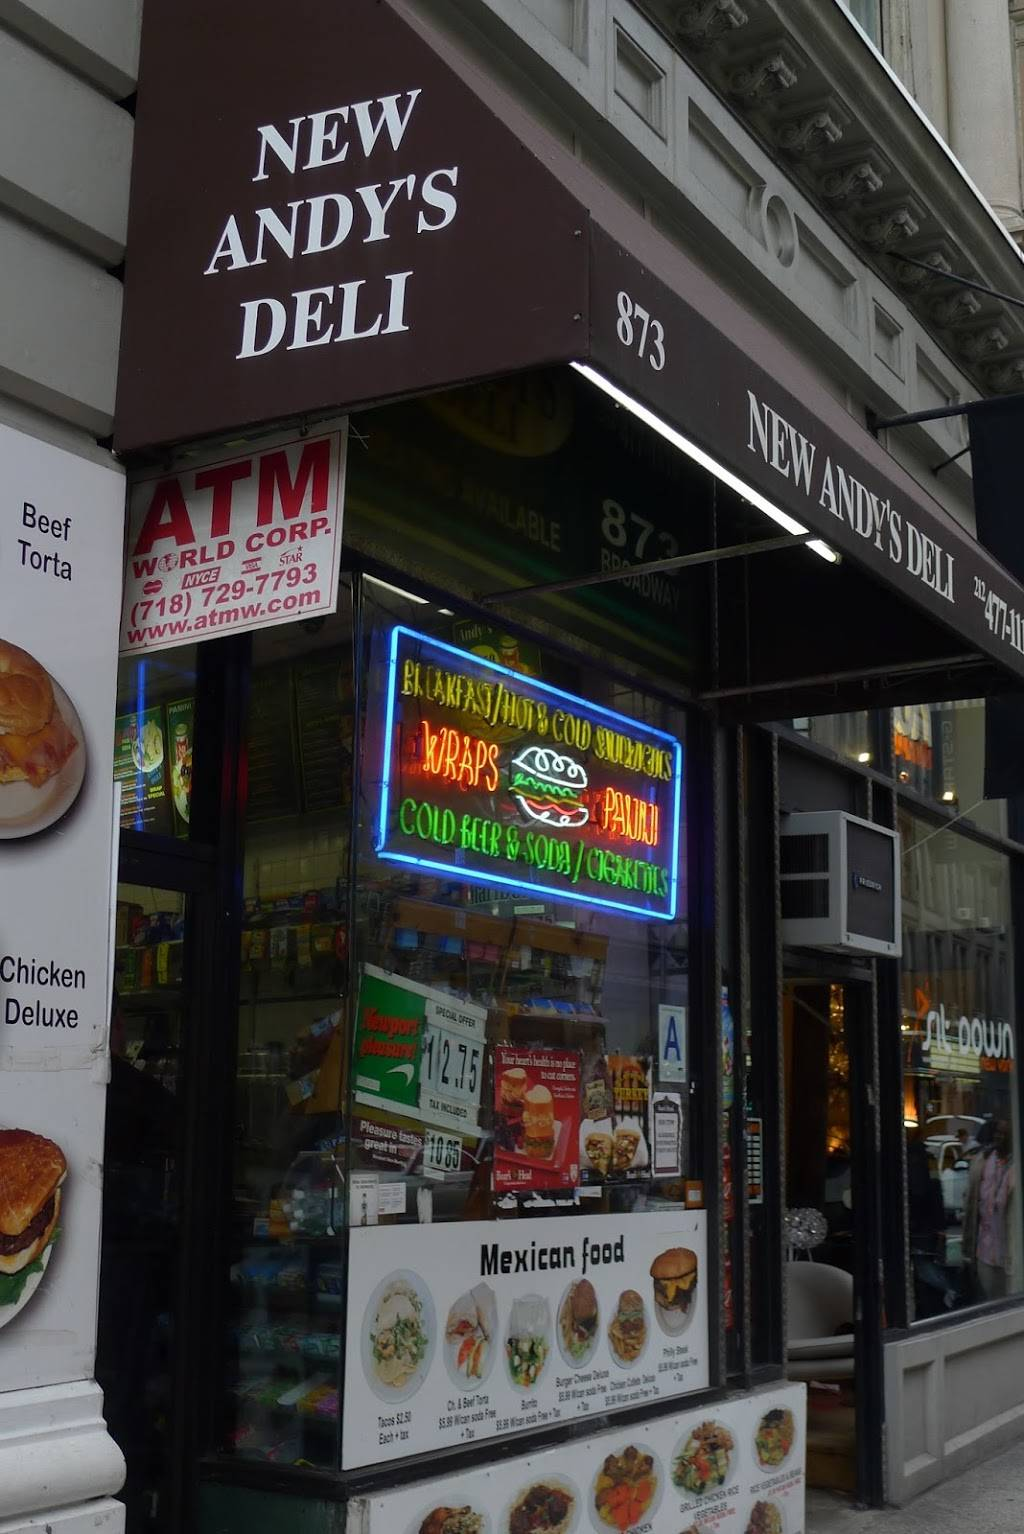 Andys Deli | meal takeaway | 873 Broadway, New York, NY 10003, USA | 2124771110 OR +1 212-477-1110